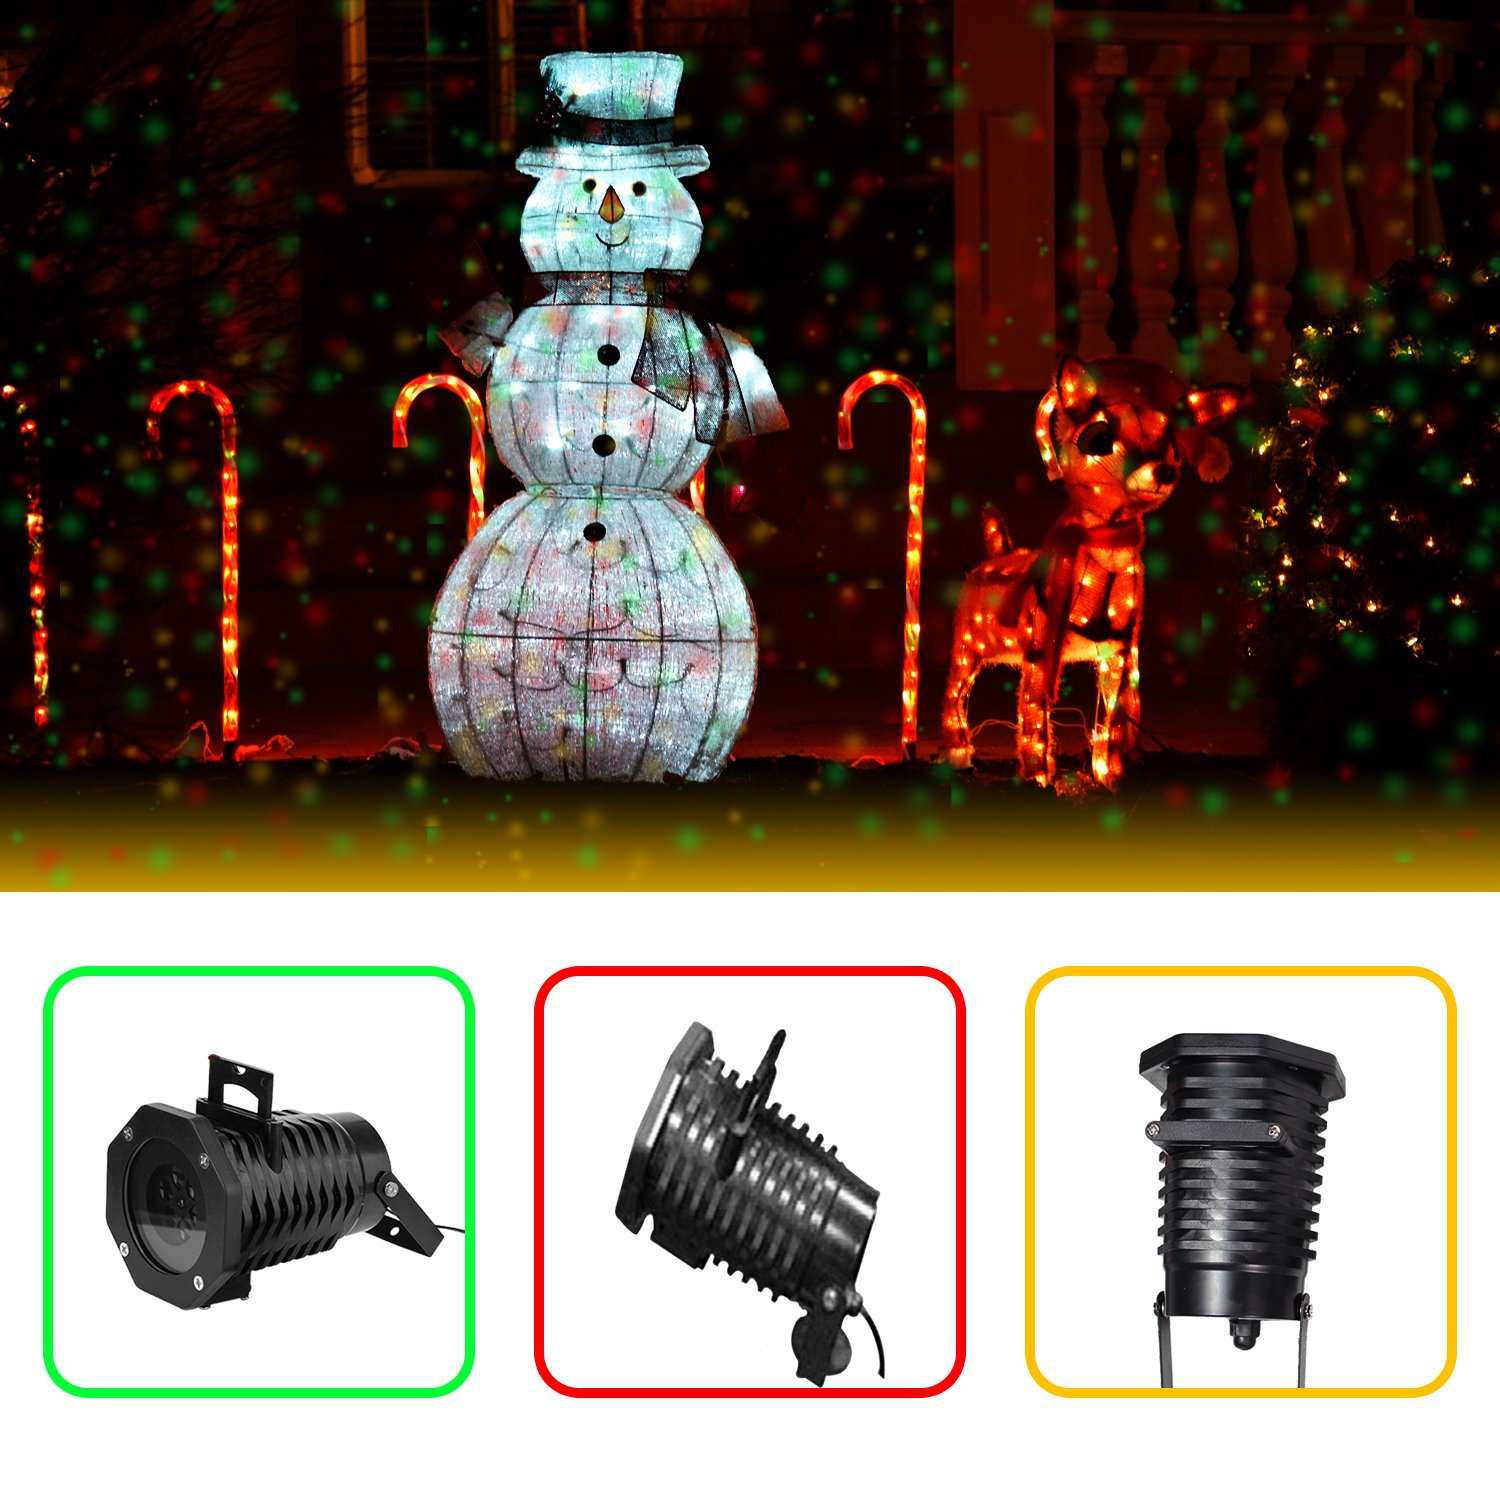 Christmas Lights Projector – Multicolor Rotating Led Christmas Shower lights, 10PCS Pattern Waterproof Lens Christmas Projector Lights Outdoor / Indoor for Celebration, Garden Decorations and more by Novapolt (Image #7)